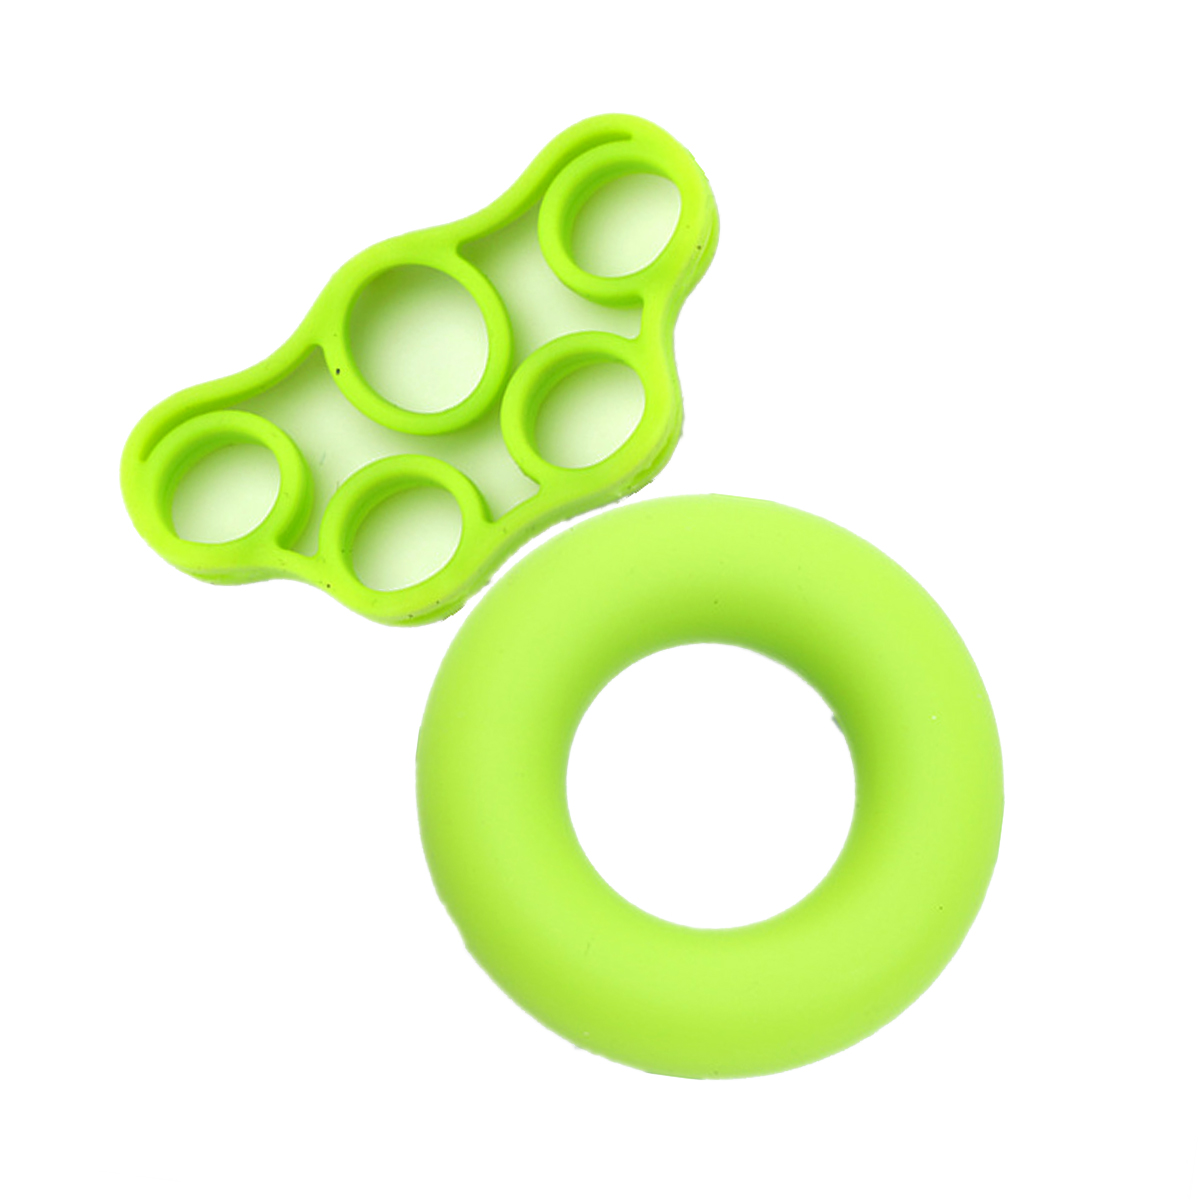 MAYITR 2PCS Silicone Hand Grip Finger Ring Fitness Stretcher Hand Exercise Gym Grip Finger Trainer Strengthener